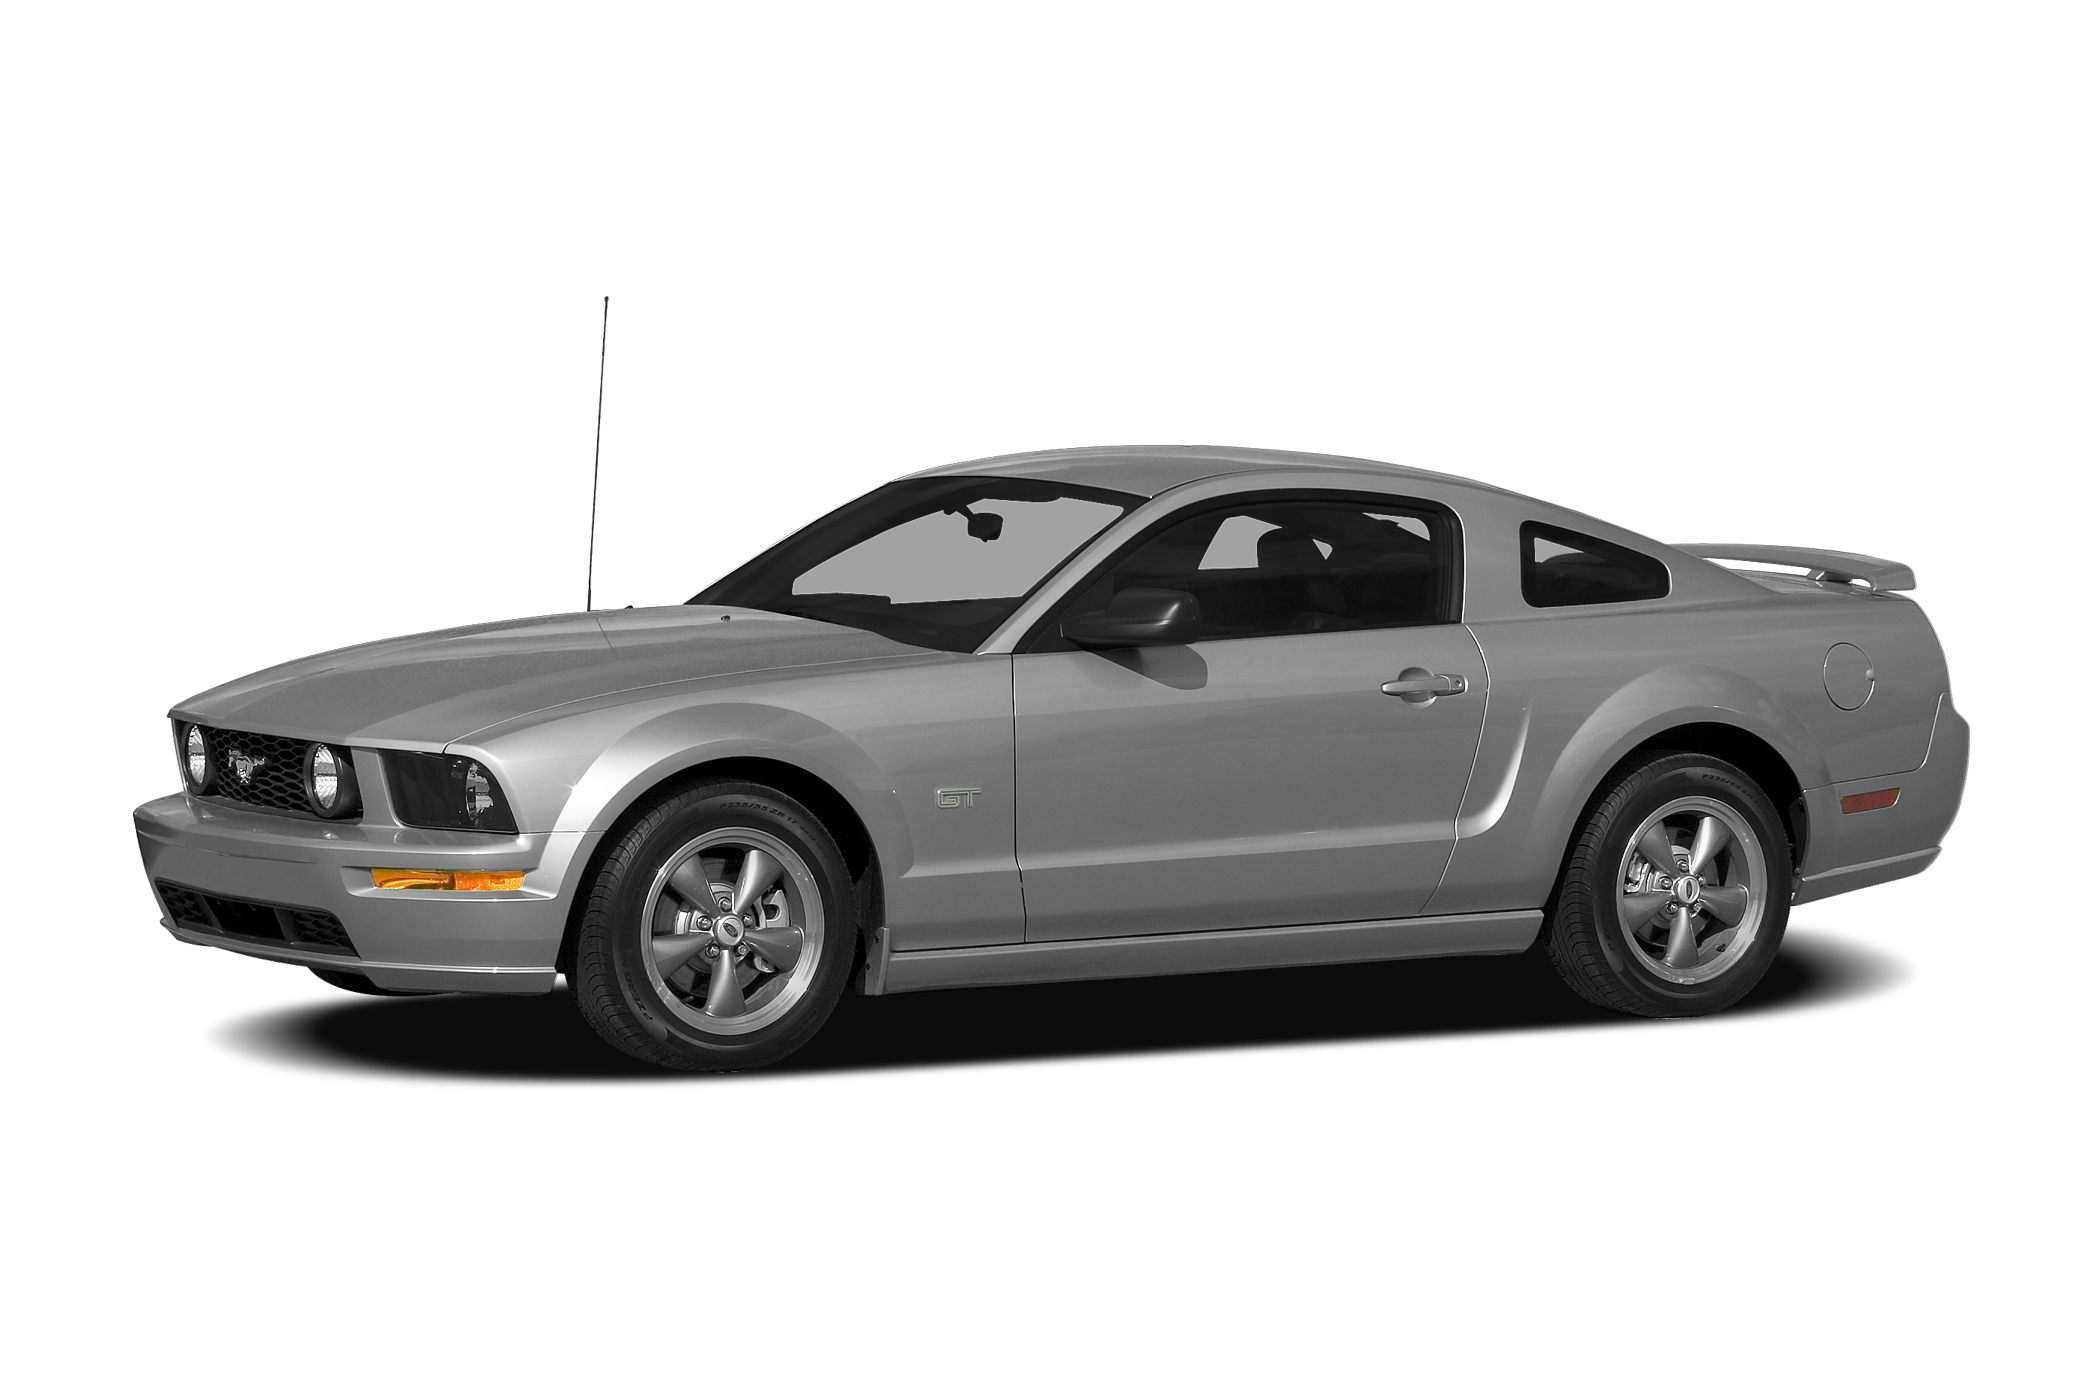 2009 Ford Mustang  JUST PURCHASED- PICTURES SOON YES ONLY 80K MILES  NO ACCIDENTS  SMOKE